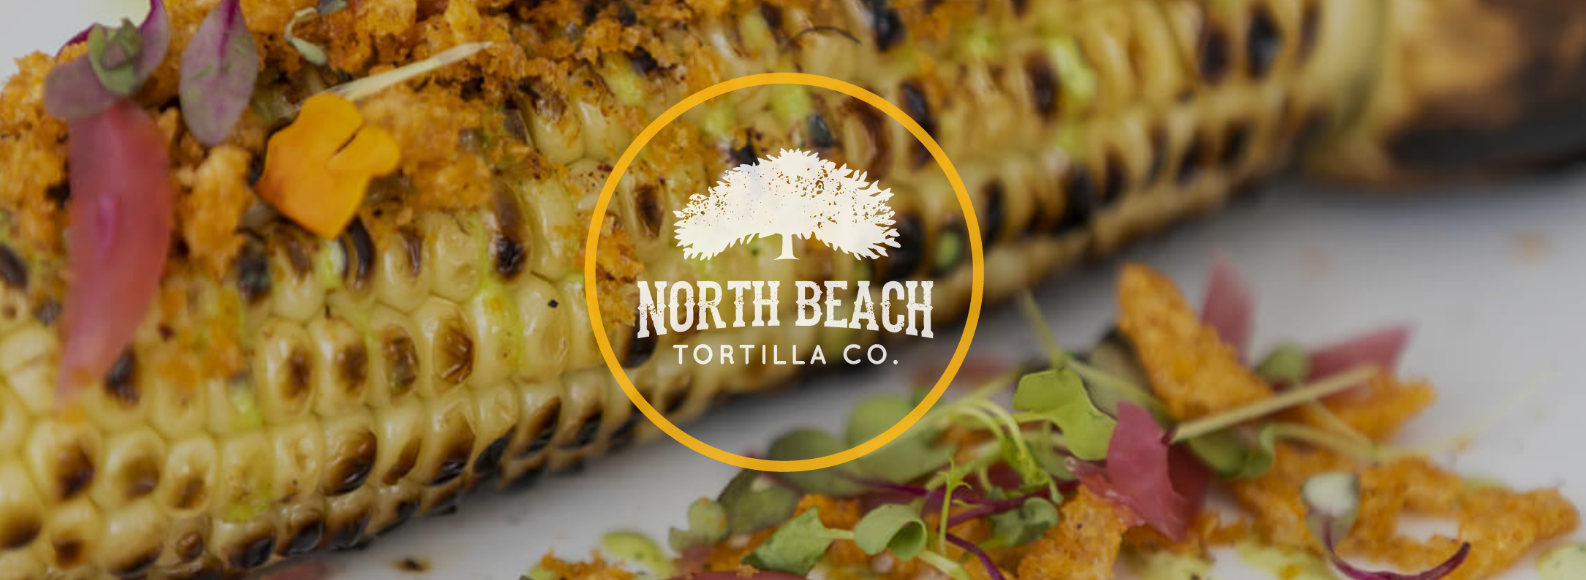 North Beach Tortilla Company